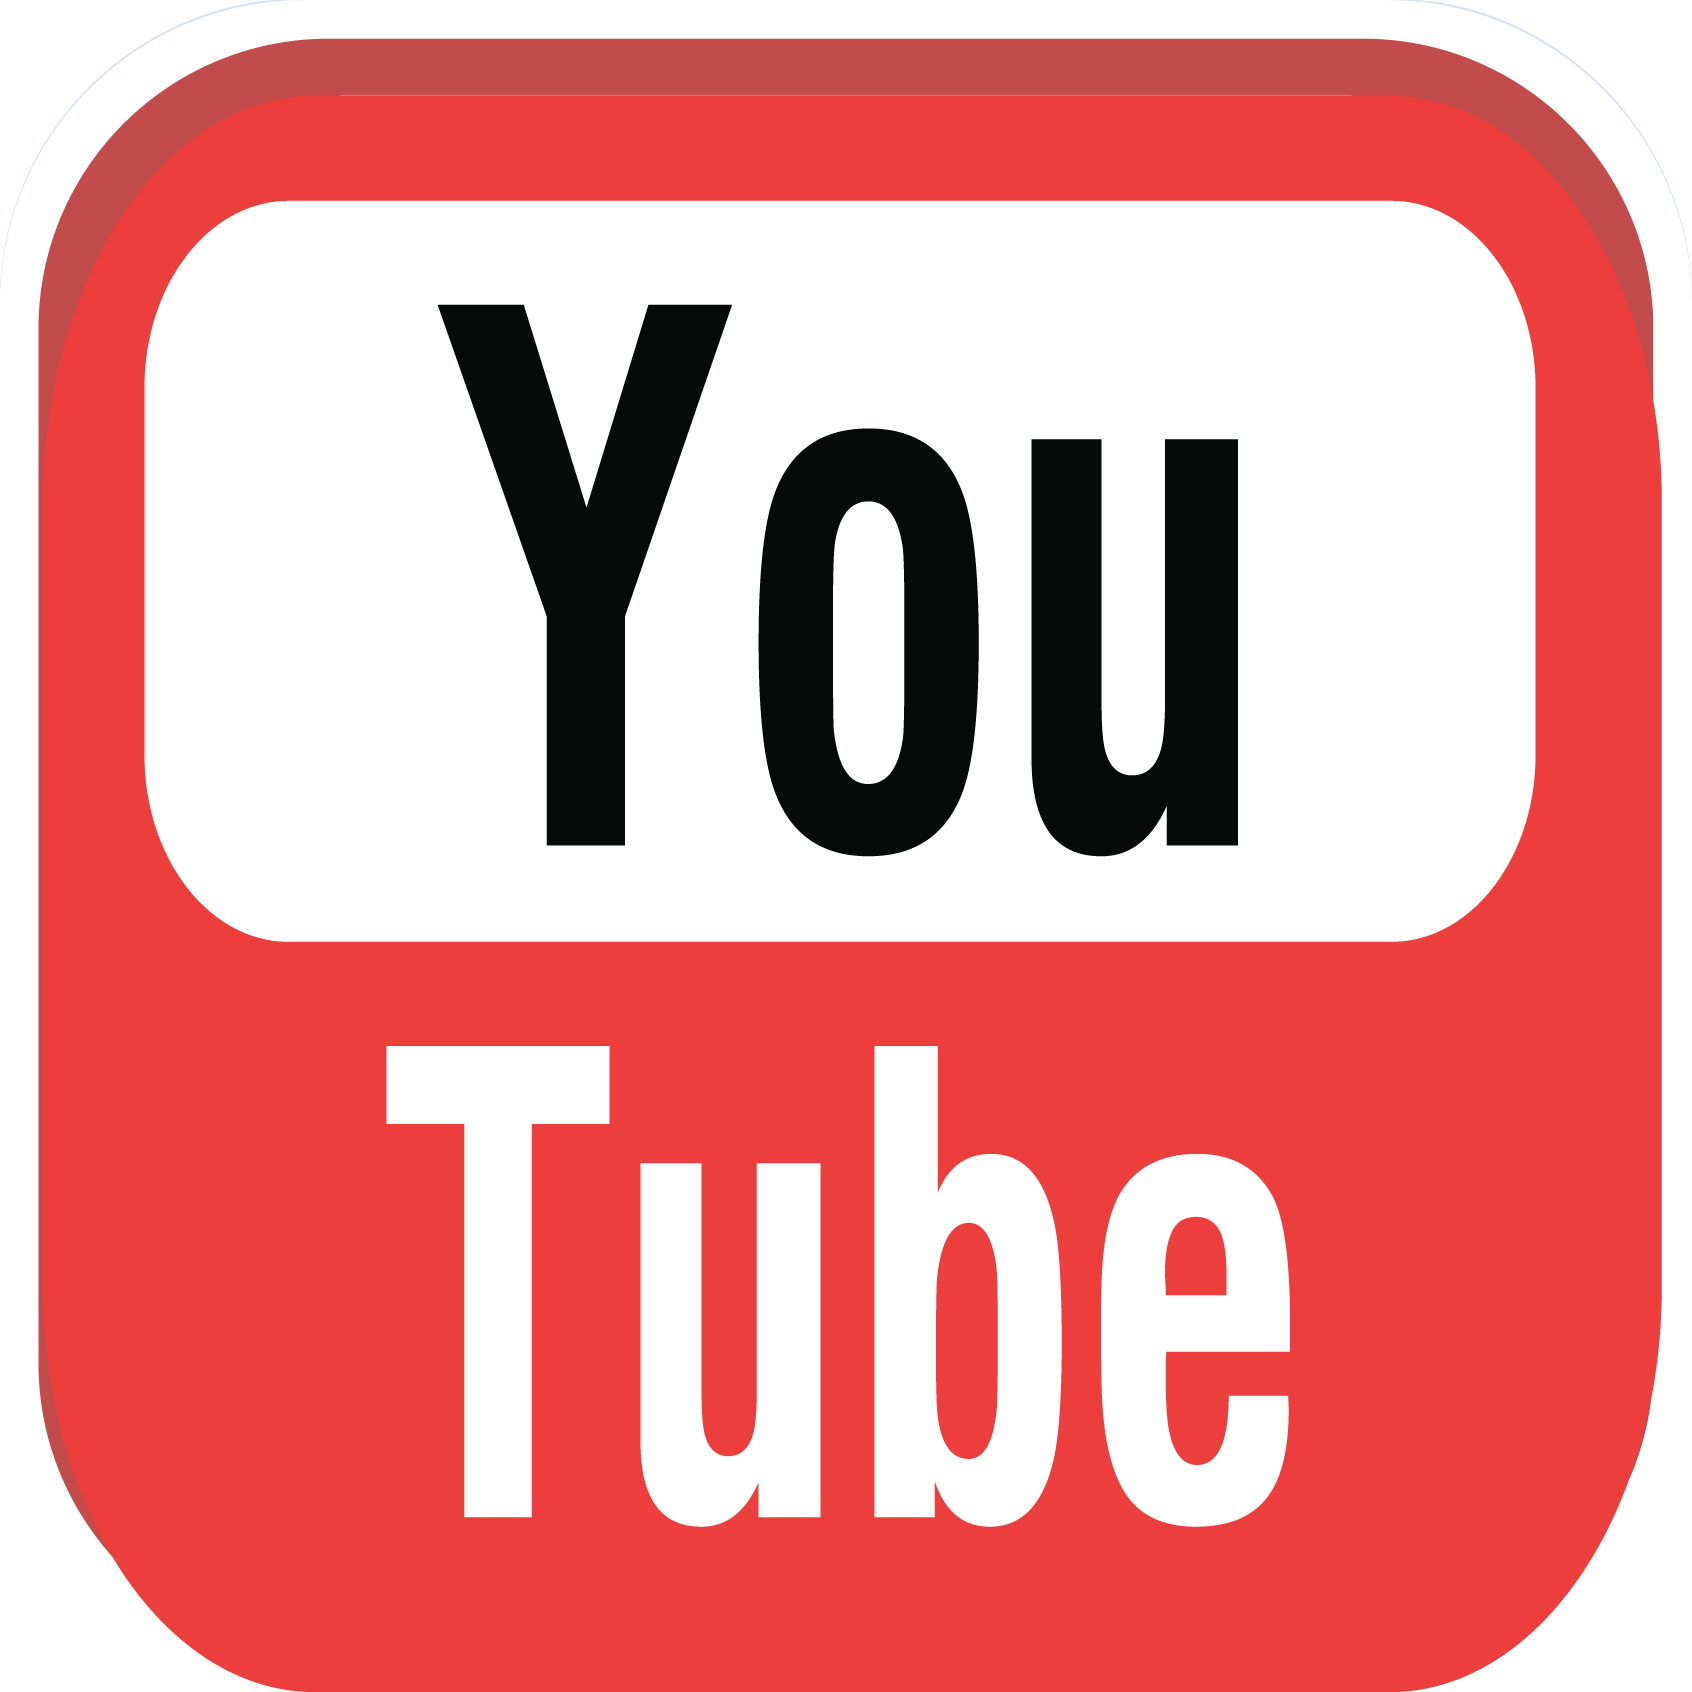 Youtube PNG - 6313